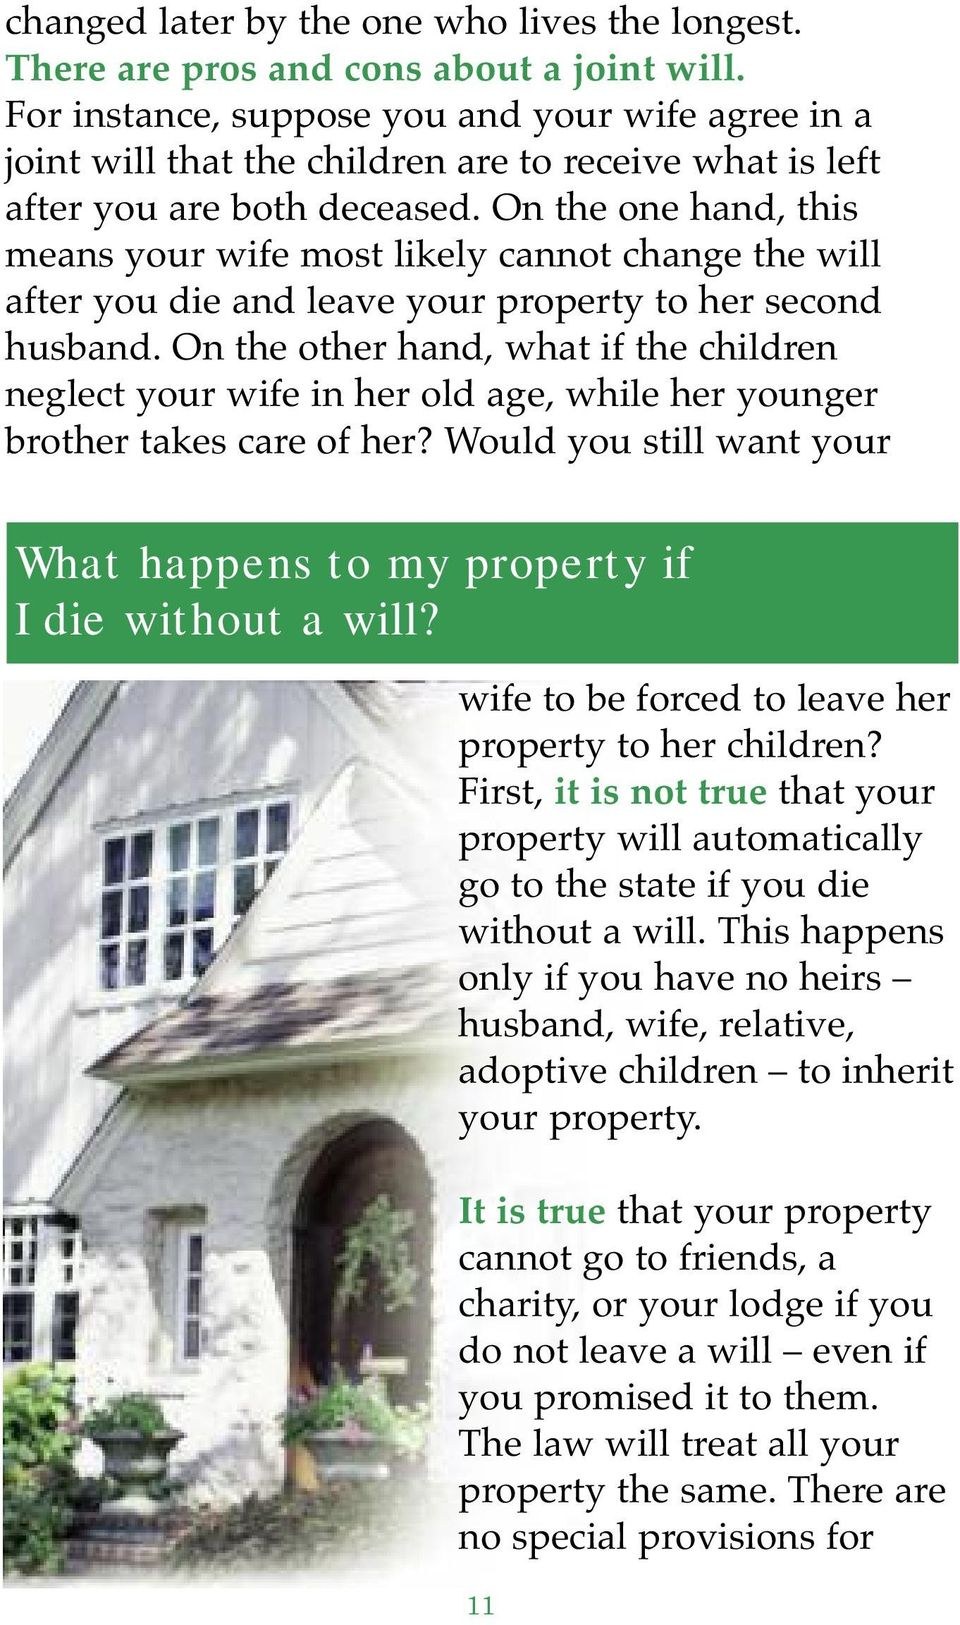 On the one hand, this means your wife most likely cannot change the will after you die and leave your property to her second husband.